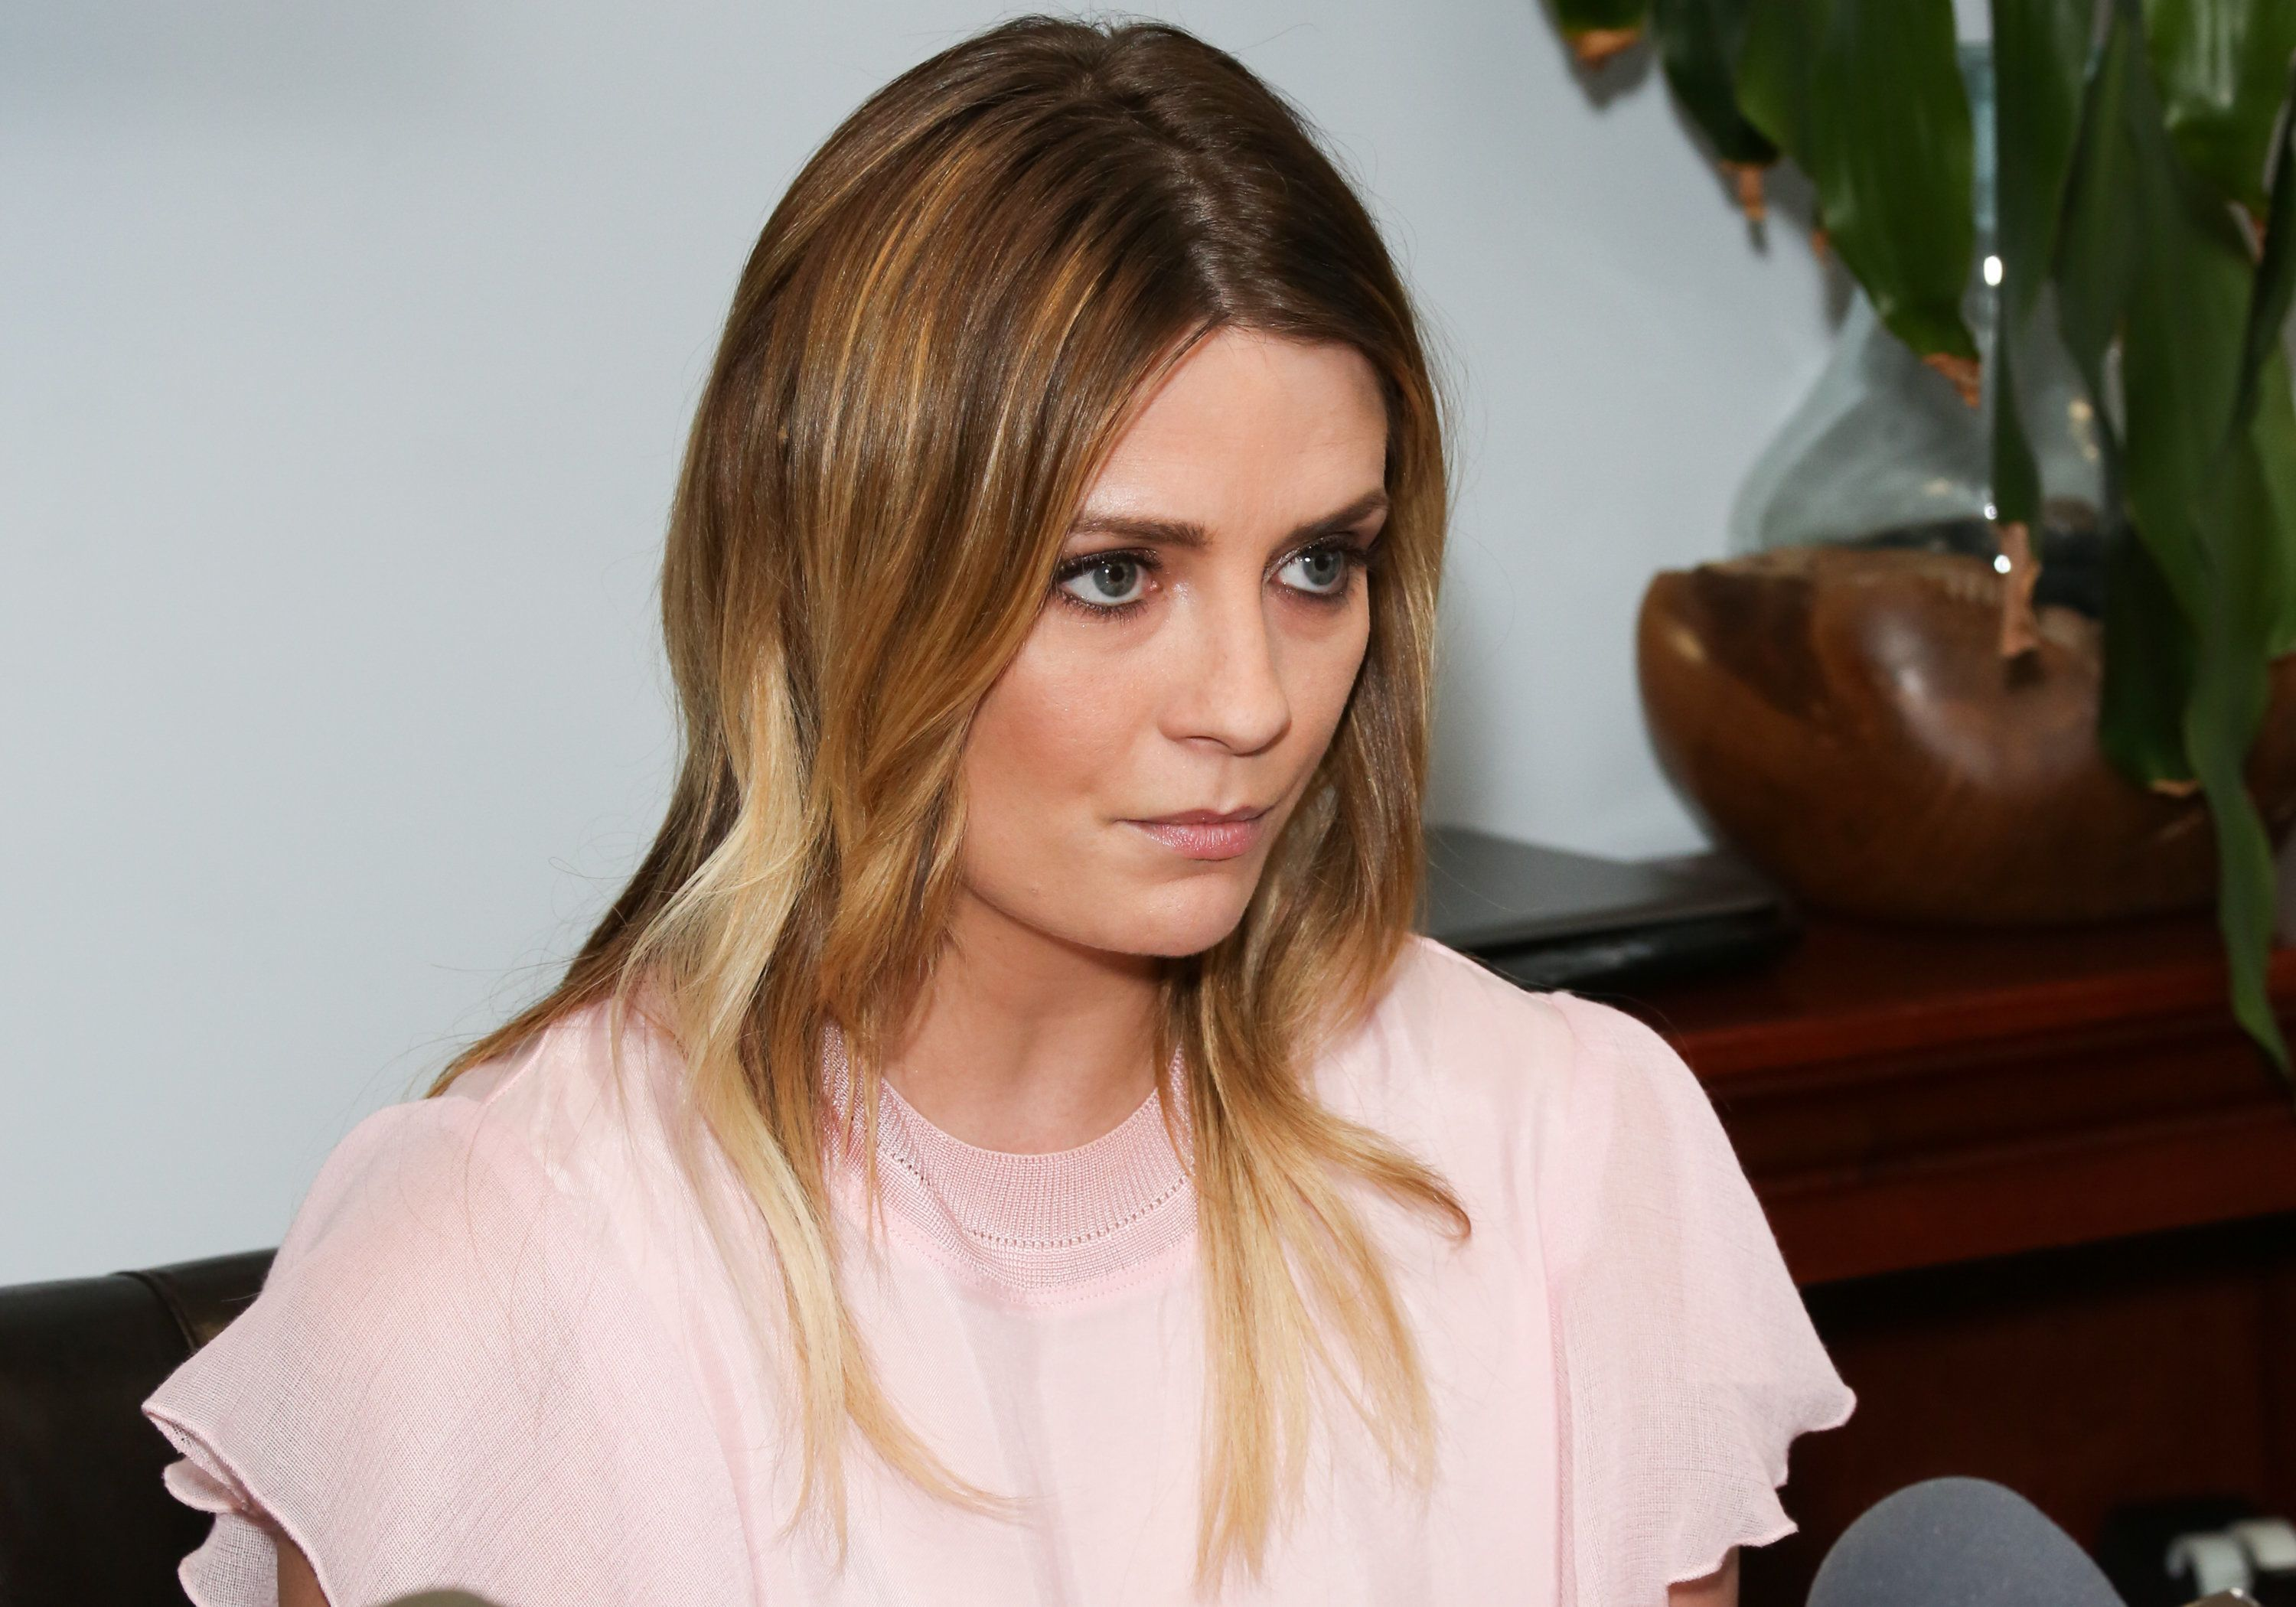 WOODLAND HILLS, CA - MARCH 15:  Actress Mischa Barton and her Attorney Lisa Bloom hold news conference on March 15, 2017 in Woodland Hills, California.  Barton and her attorney held the conference to address the legal action they are taking against a former boyfriend and a sex tape that allegedly features the actress.  (Photo by Paul Archuleta/Getty Images)